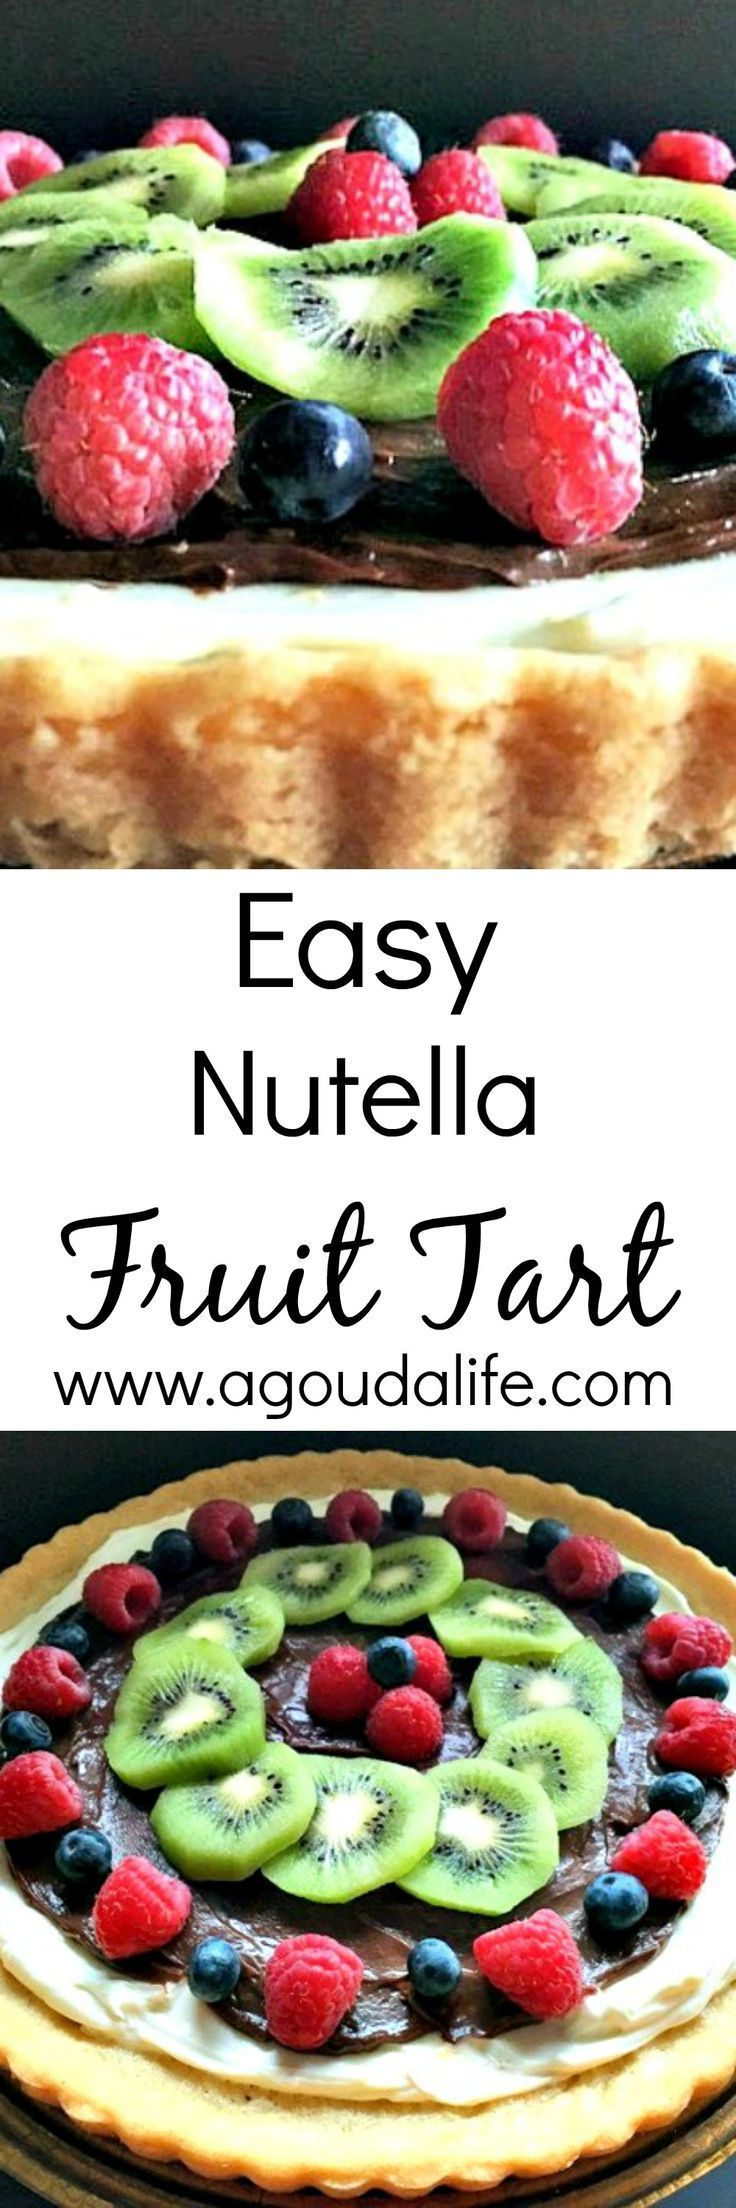 Easy Nutella Fruit Tart: sugar cookie dough crust topped with cheesecake type layer, Nutella and fruit of your choice.